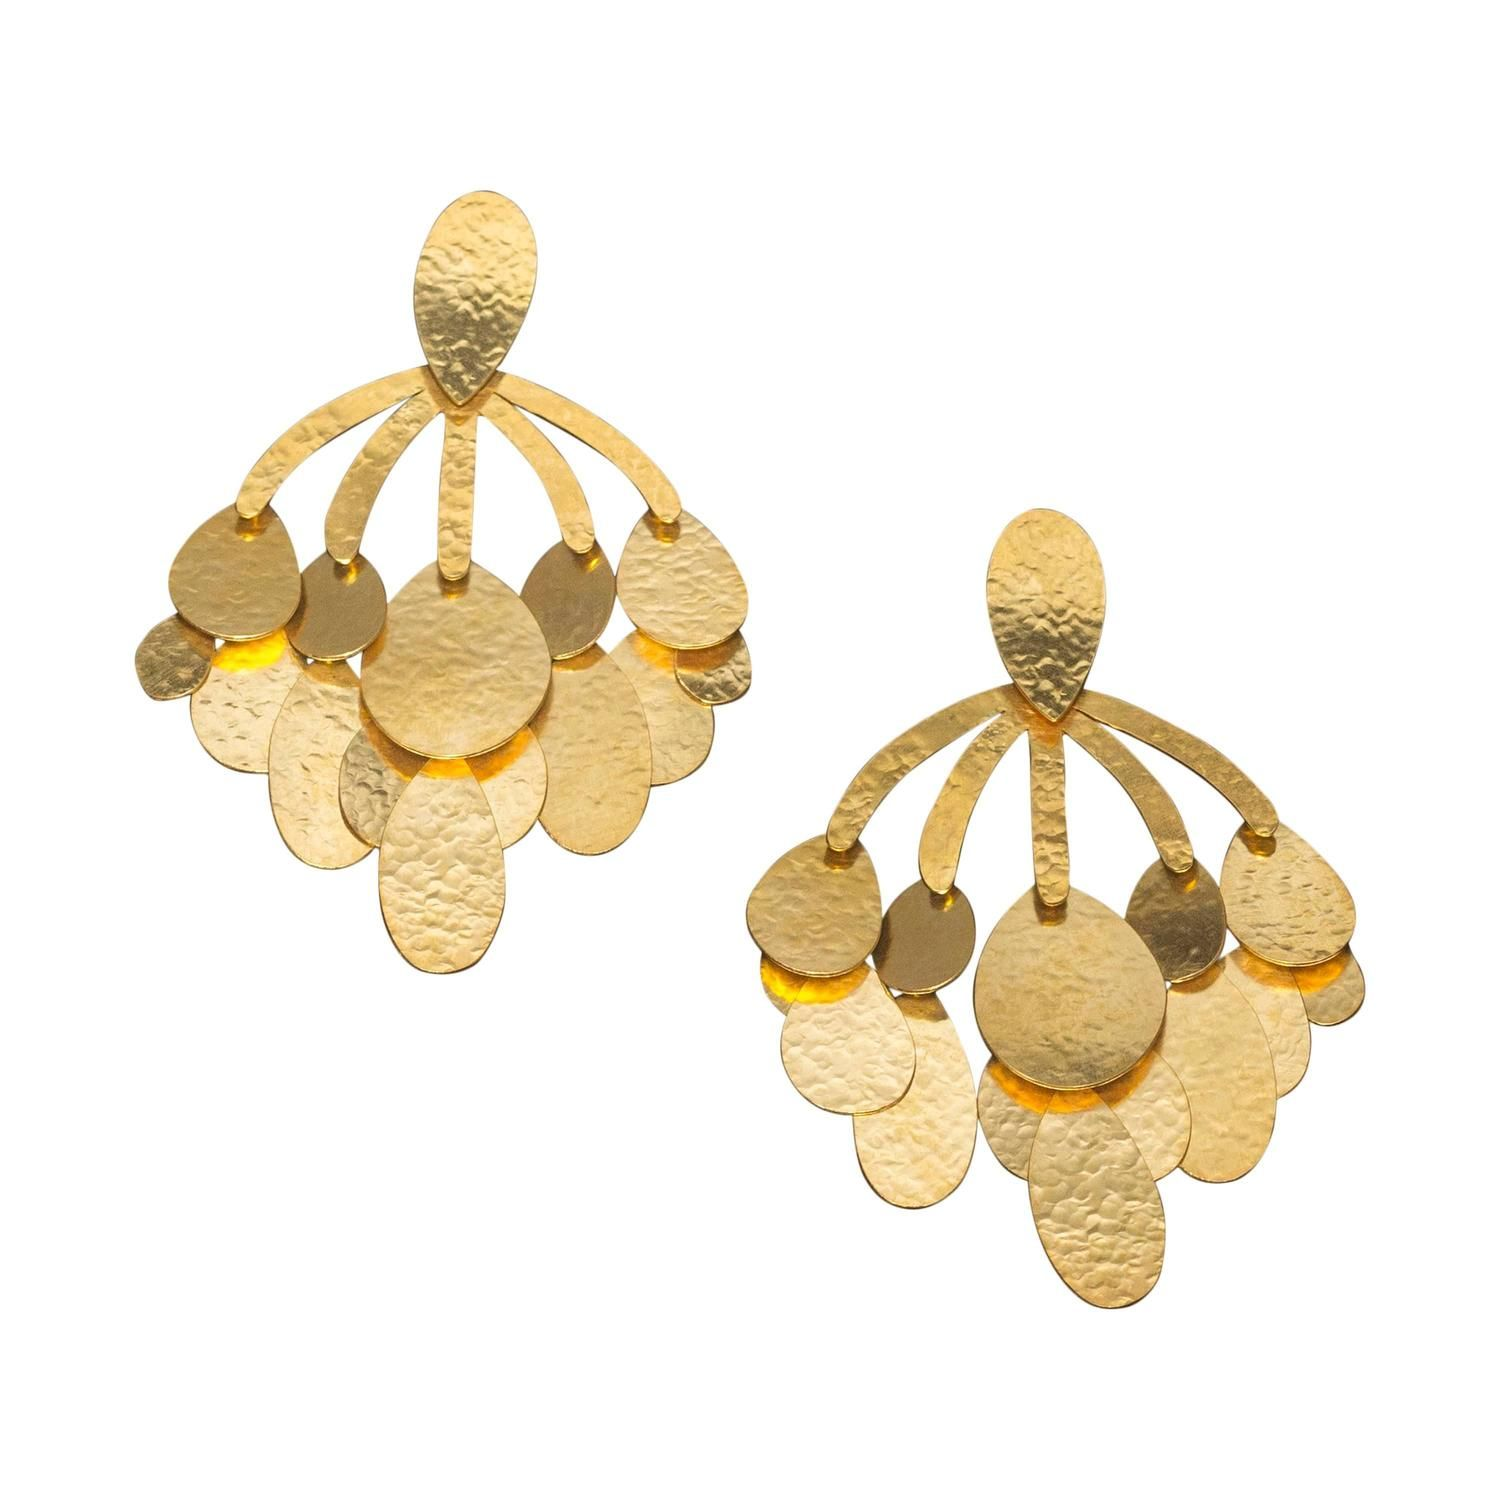 Herve van der straeten oversized clip earrings van der straeten herve van der straeten oversized clip earrings aloadofball